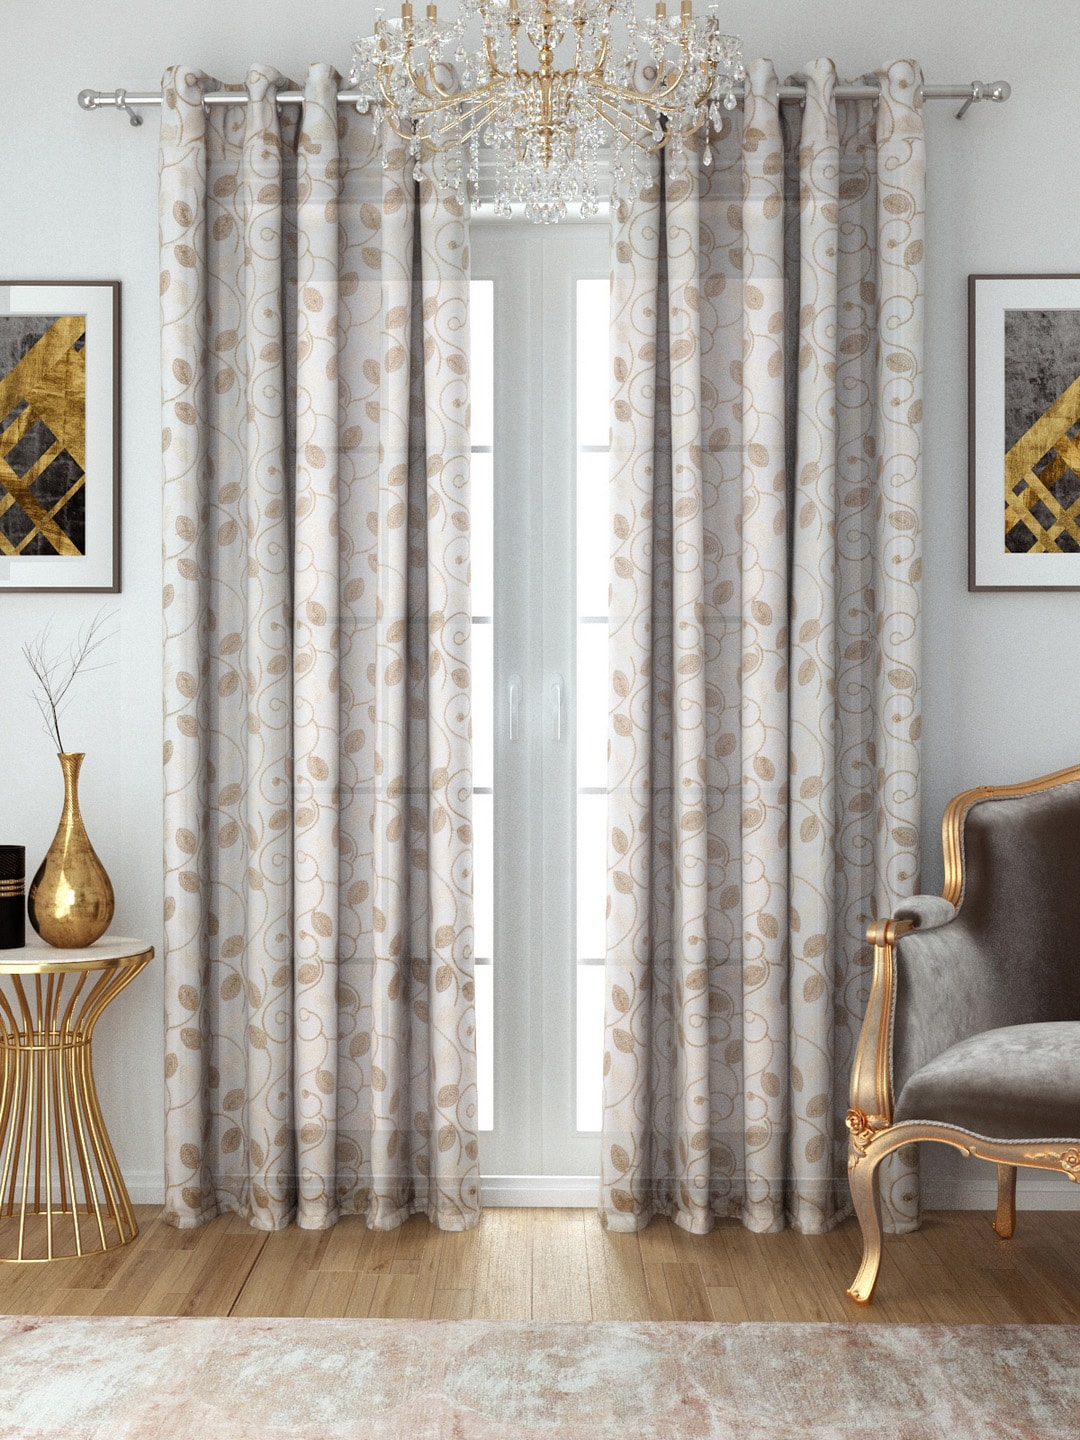 Buy curtains stylish online india fotos